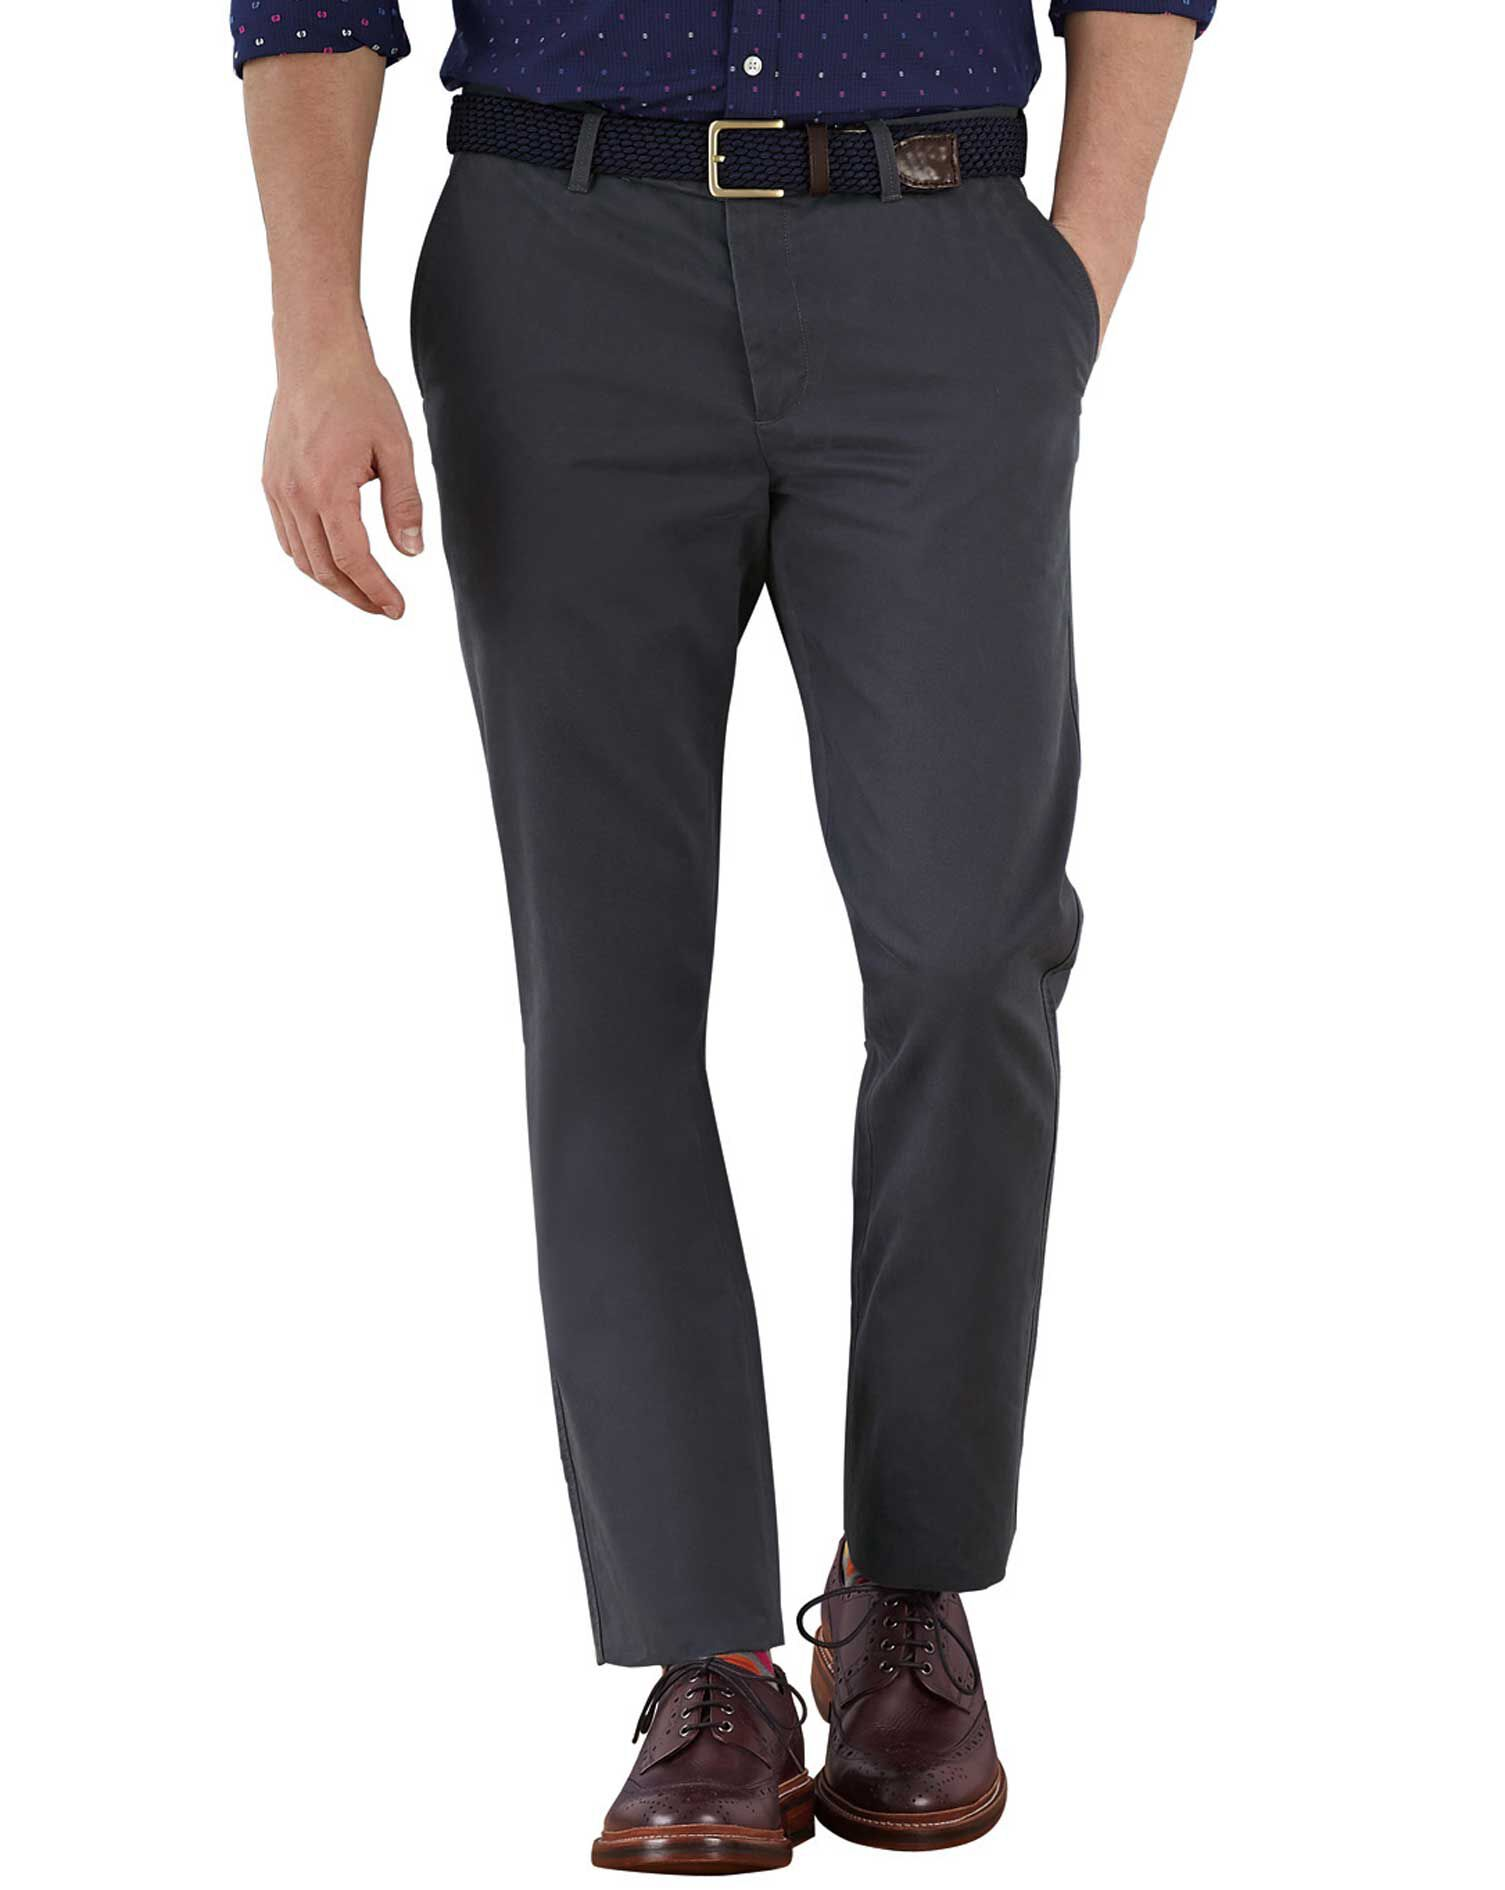 Charcoal Extra Slim Fit Flat Front Cotton Chino Trousers Size W38 L30 by Charles Tyrwhitt